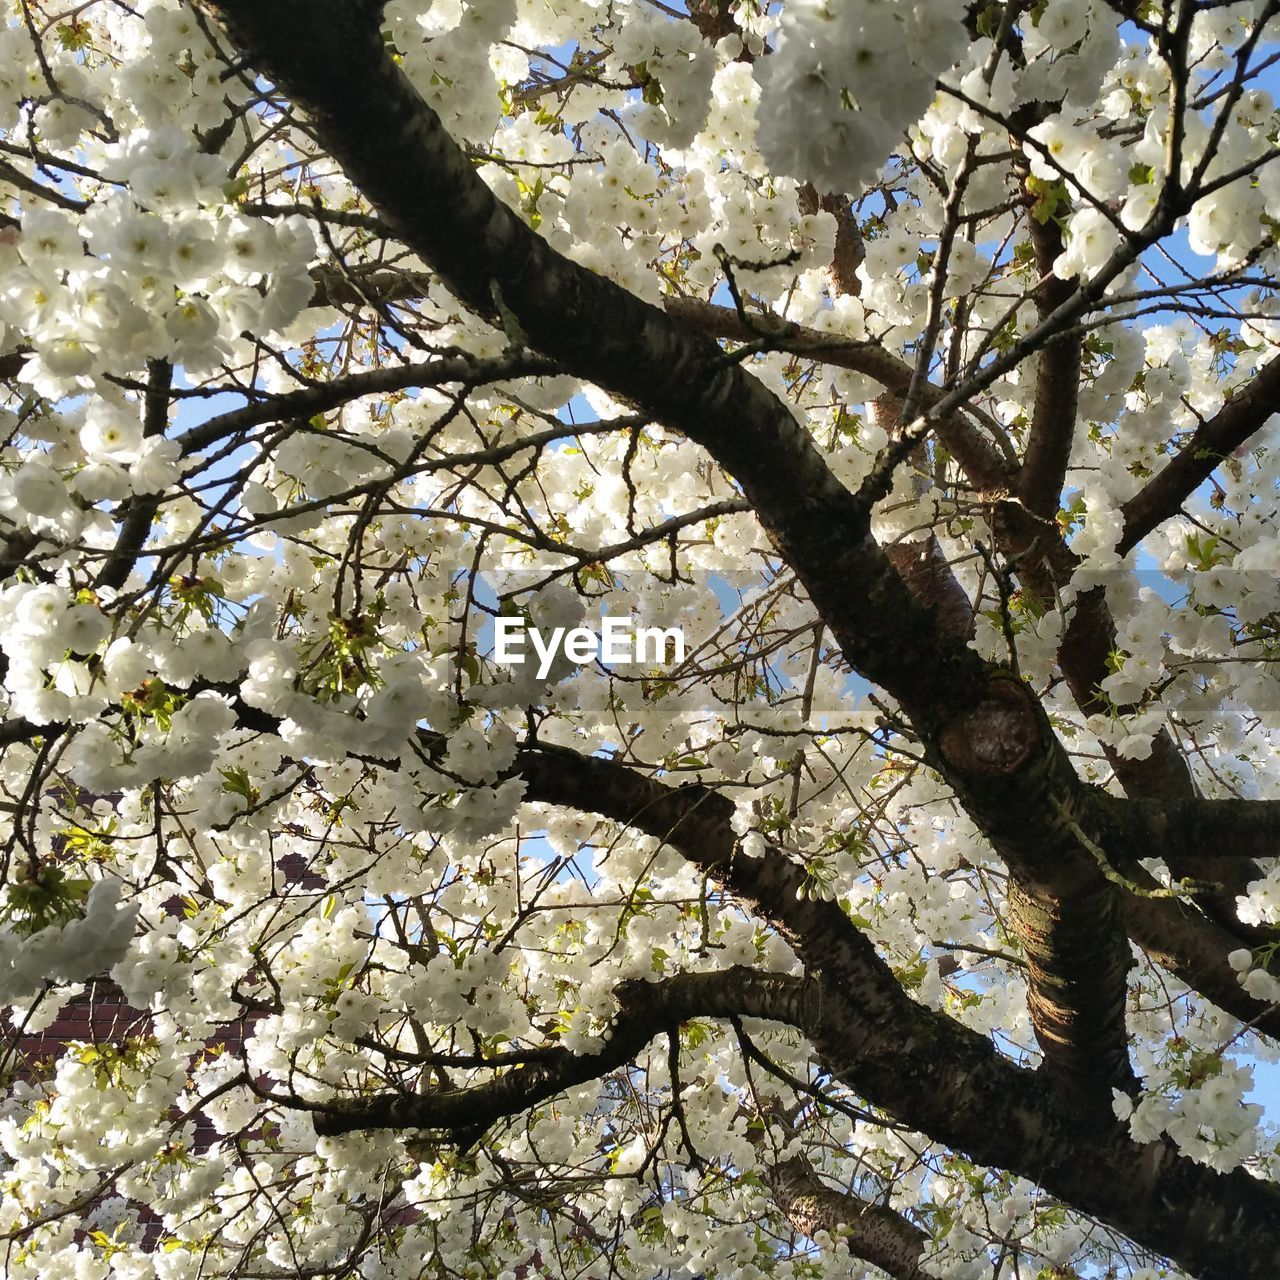 tree, flower, blossom, branch, springtime, growth, apple blossom, beauty in nature, fragility, cherry blossom, apple tree, nature, orchard, almond tree, freshness, botany, cherry tree, white color, low angle view, twig, magnolia, no people, petal, backgrounds, day, spring, outdoors, flower head, close-up